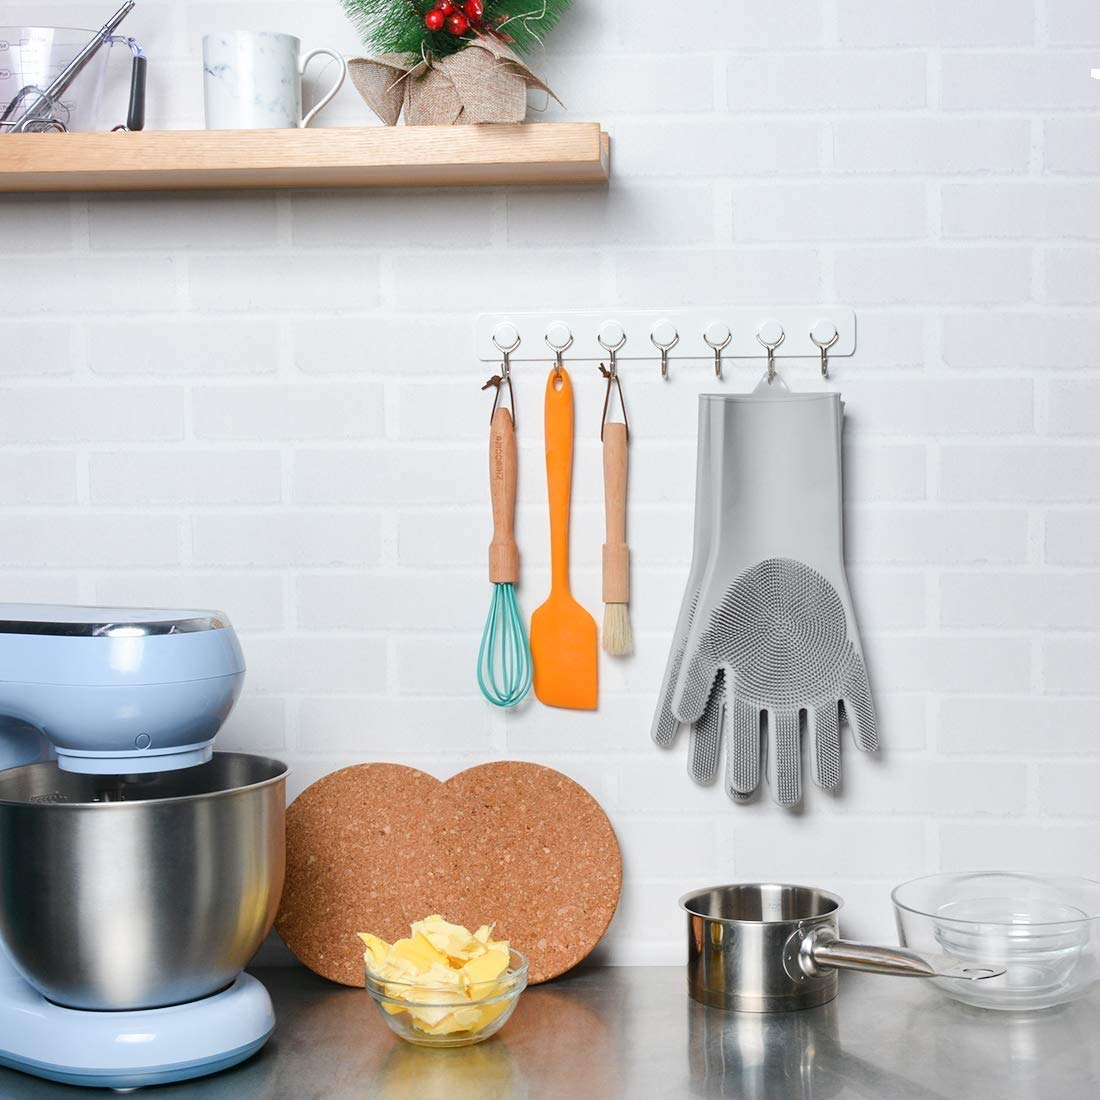 LMKJ Upgraded Gray Magic Silicone Dishwashing Gloves,Reusable Silicone Brush Scrubber Gloves with Long Bristles,Heat Resistant Great for Cleaning Dishwashing,Kitchen and Bathroom